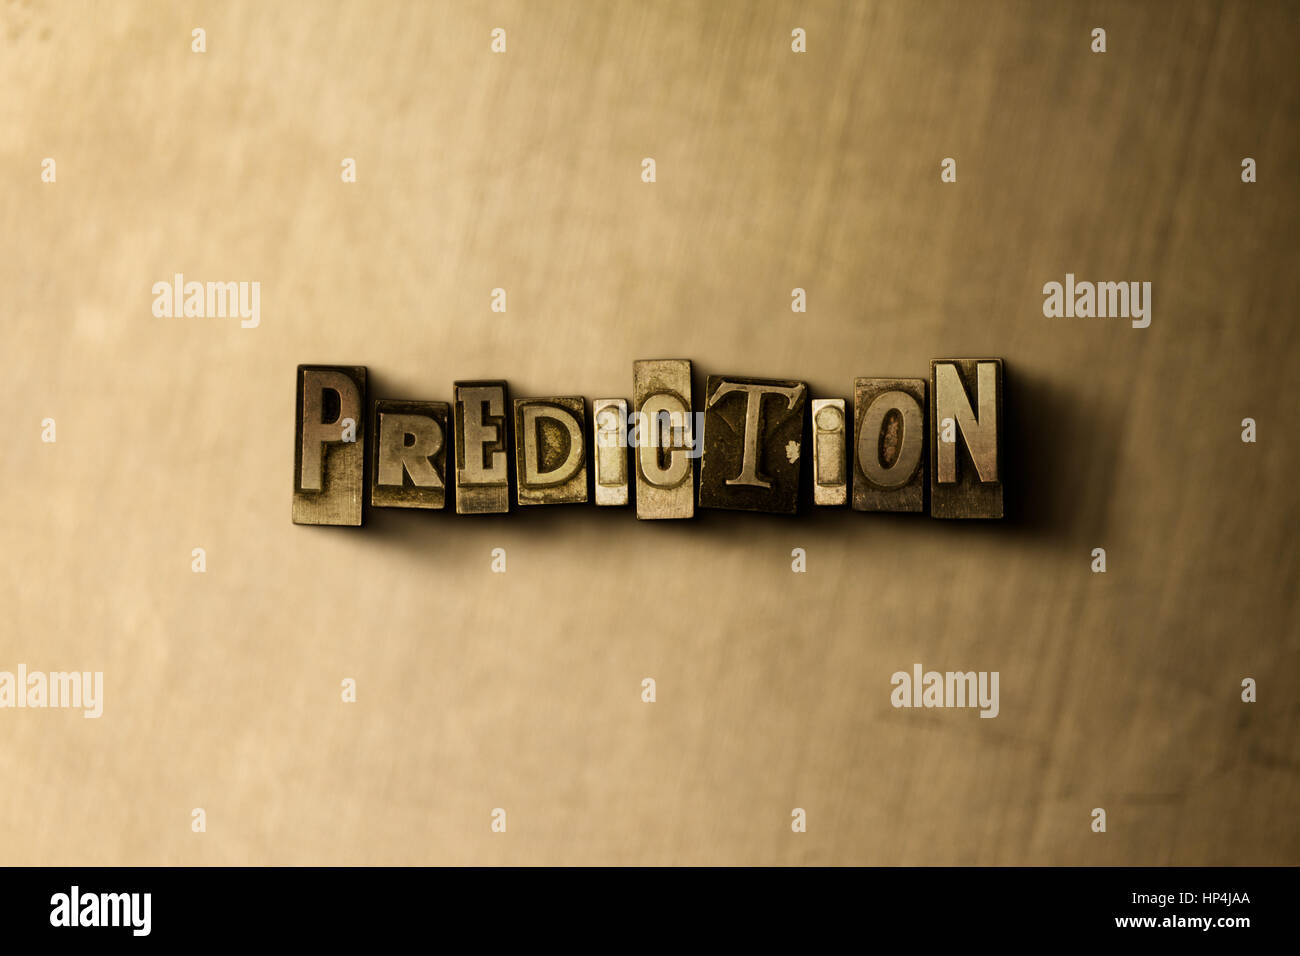 PREDICTION - close-up of grungy vintage typeset word on metal backdrop. Royalty free stock illustration.  Can be - Stock Image